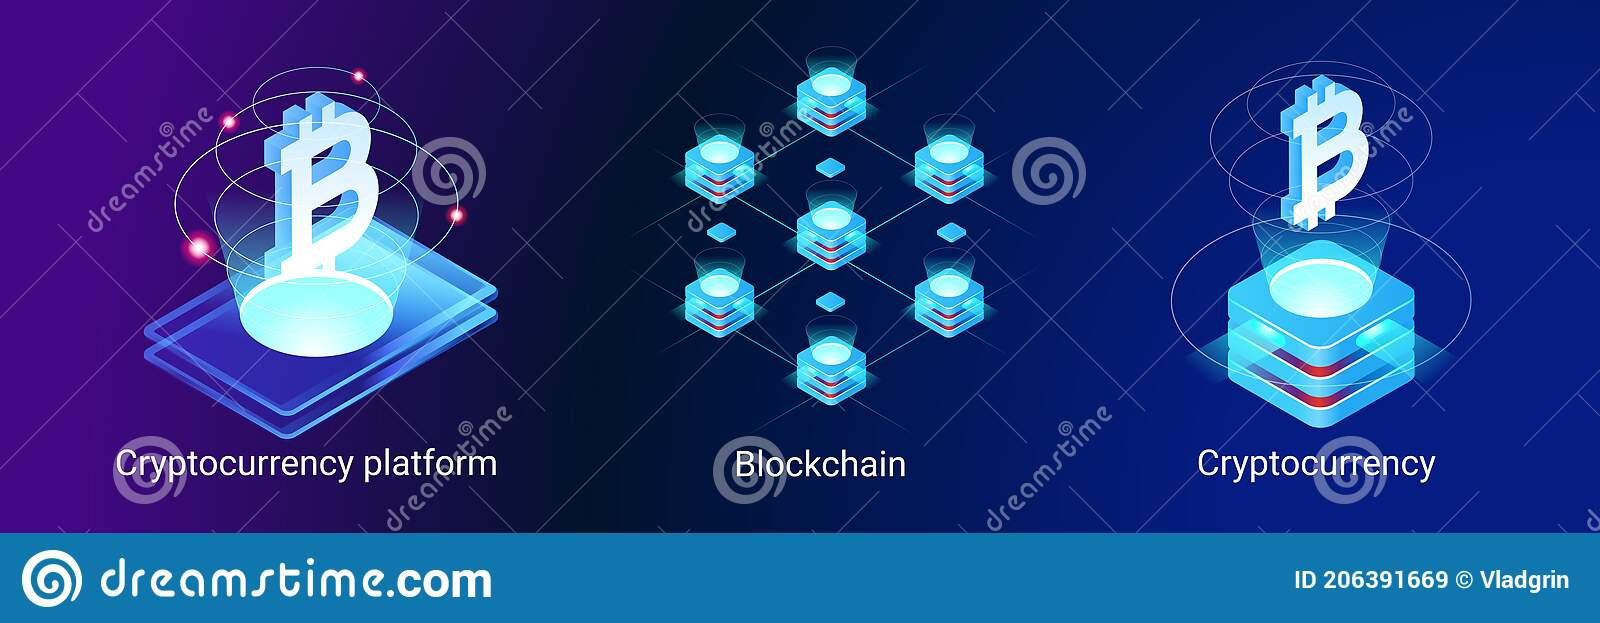 marketplace cryptocurrency